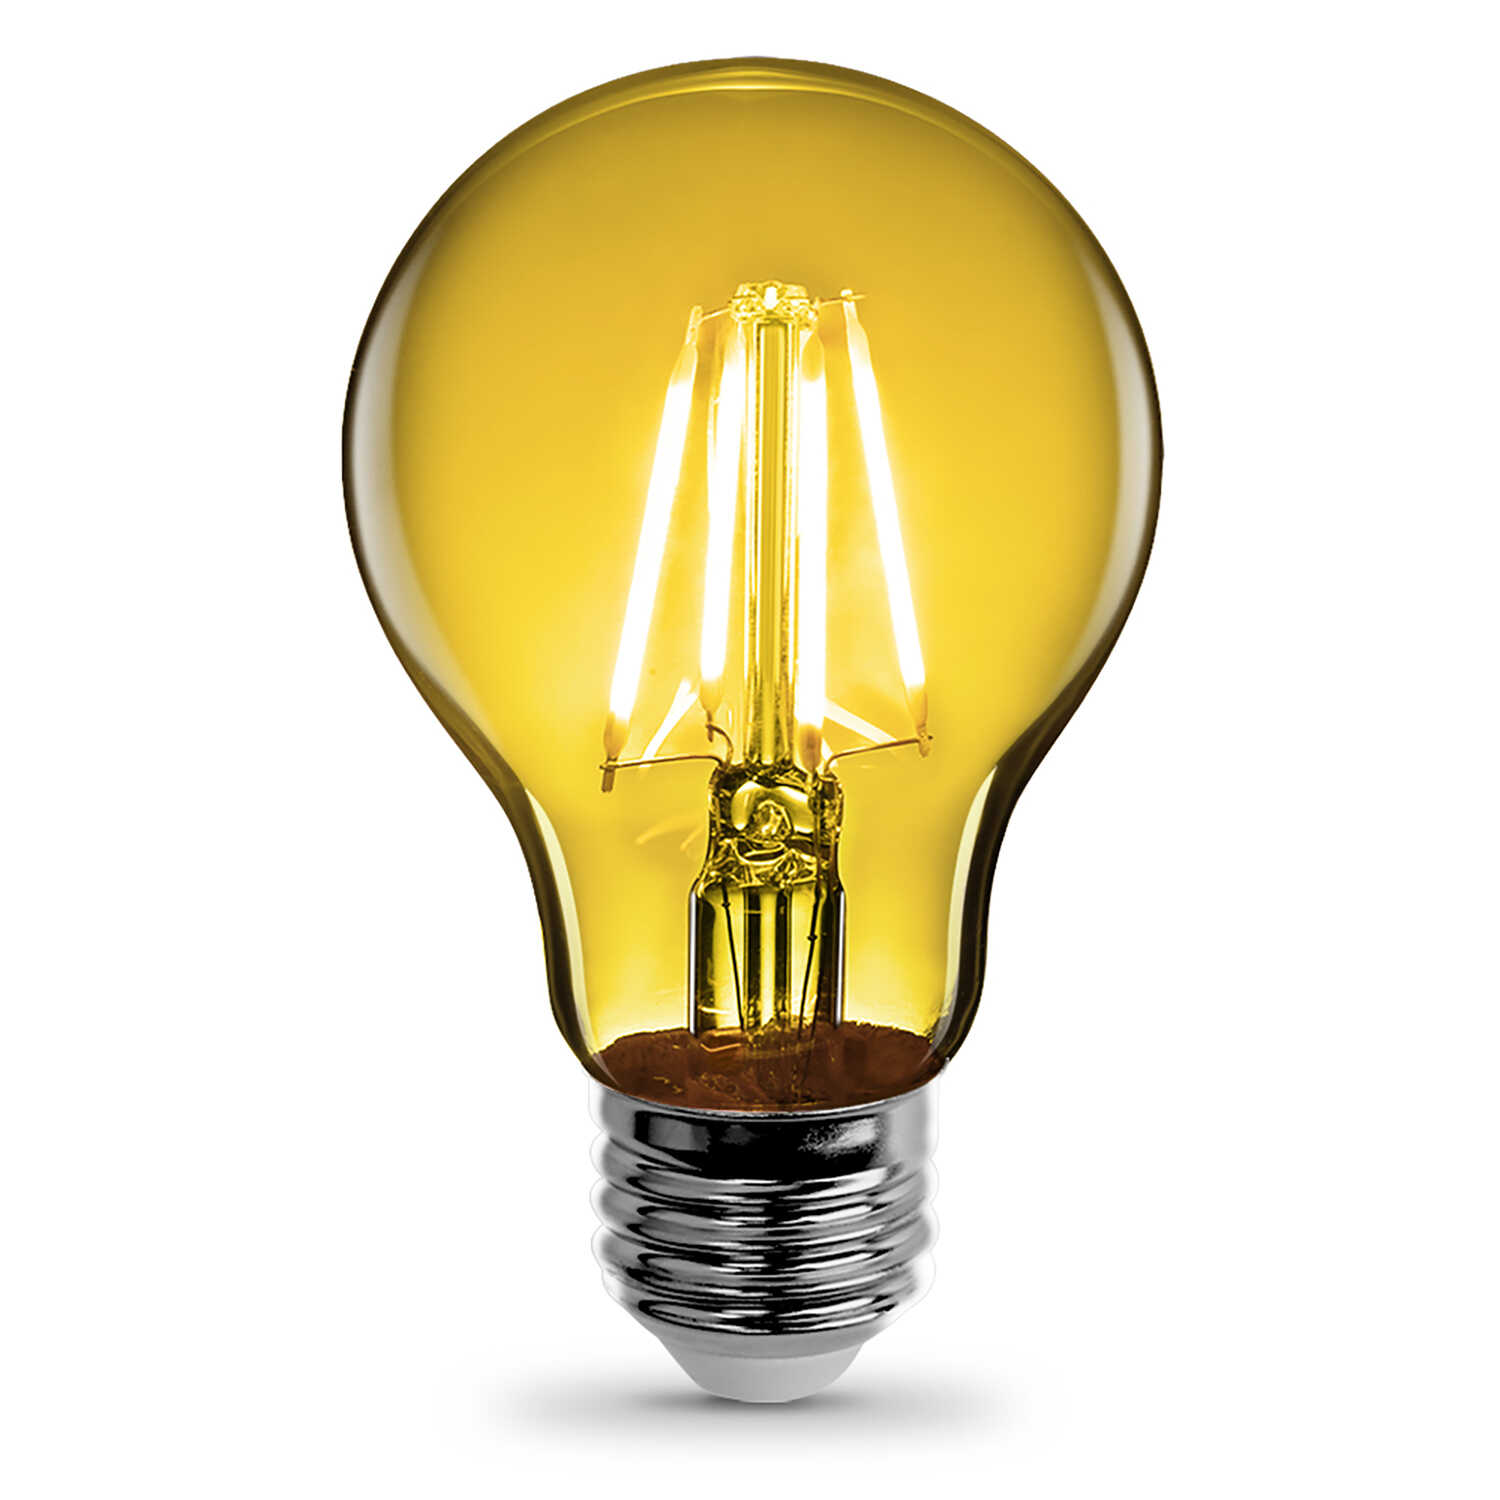 FEIT Electric  Filament  4.5 watts A19  LED Bulb  450 lumens 30 Watt Equivalence Yellow  A-Line